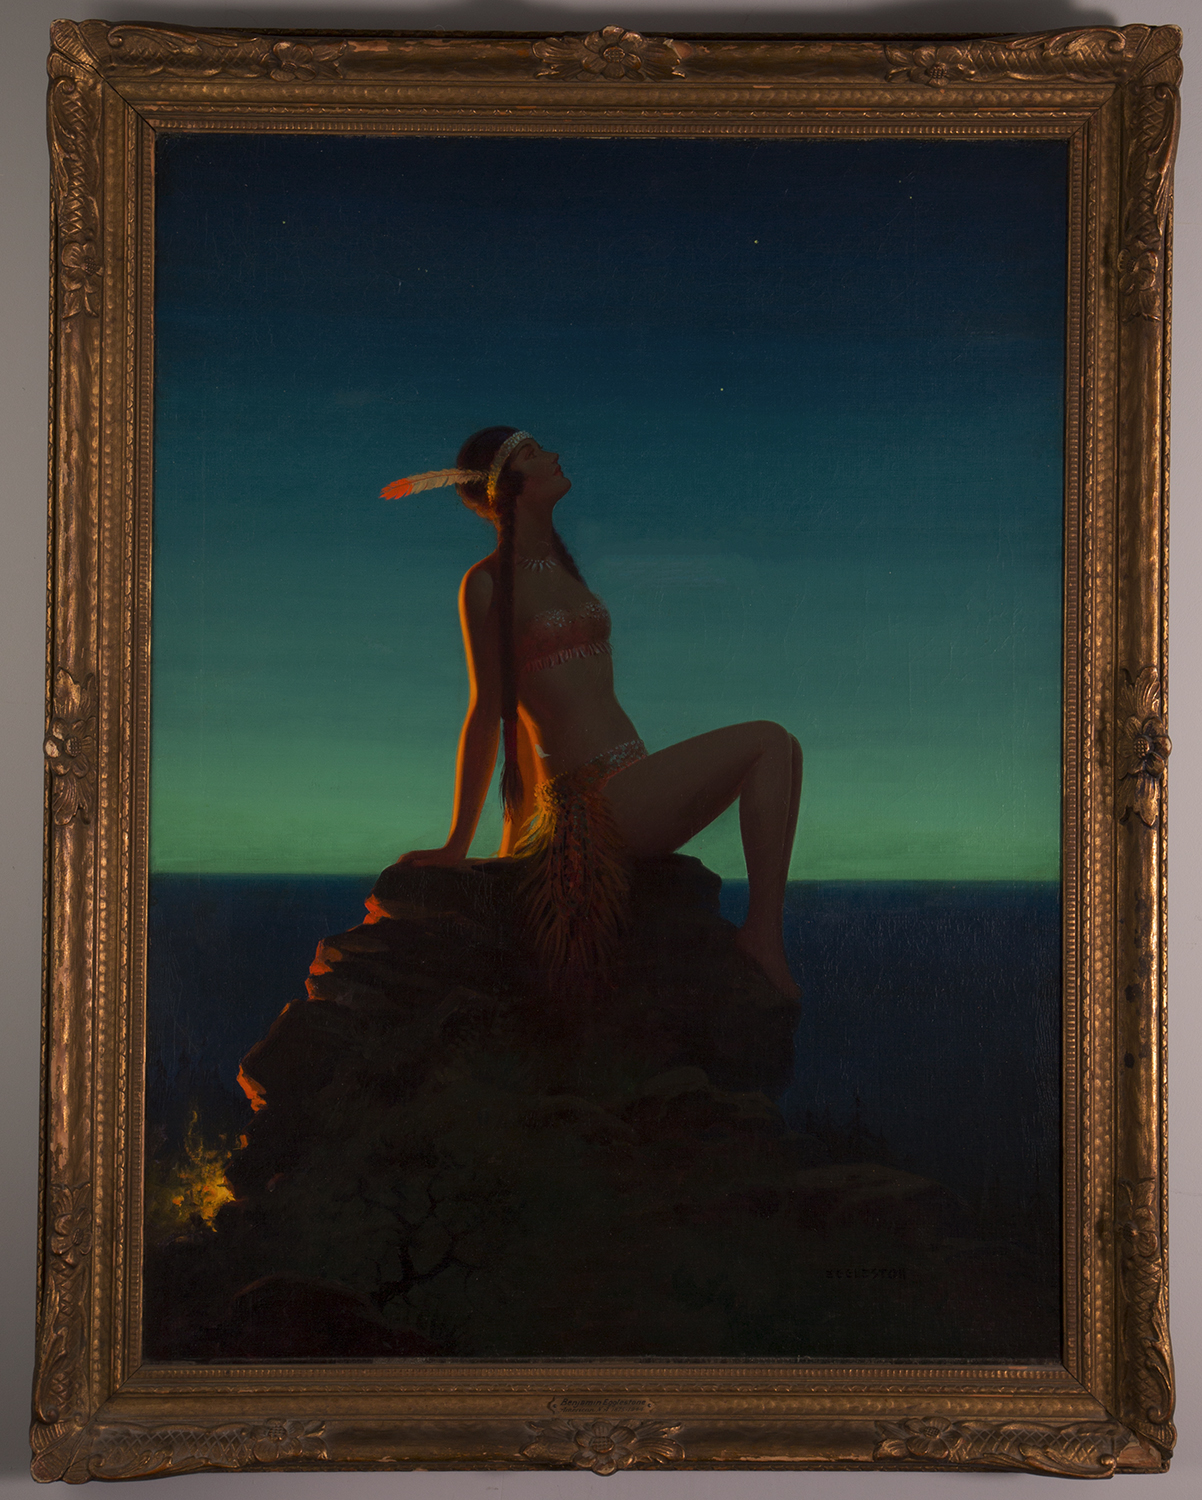 Framed view of Indian Maiden painting by Edward Eggleston